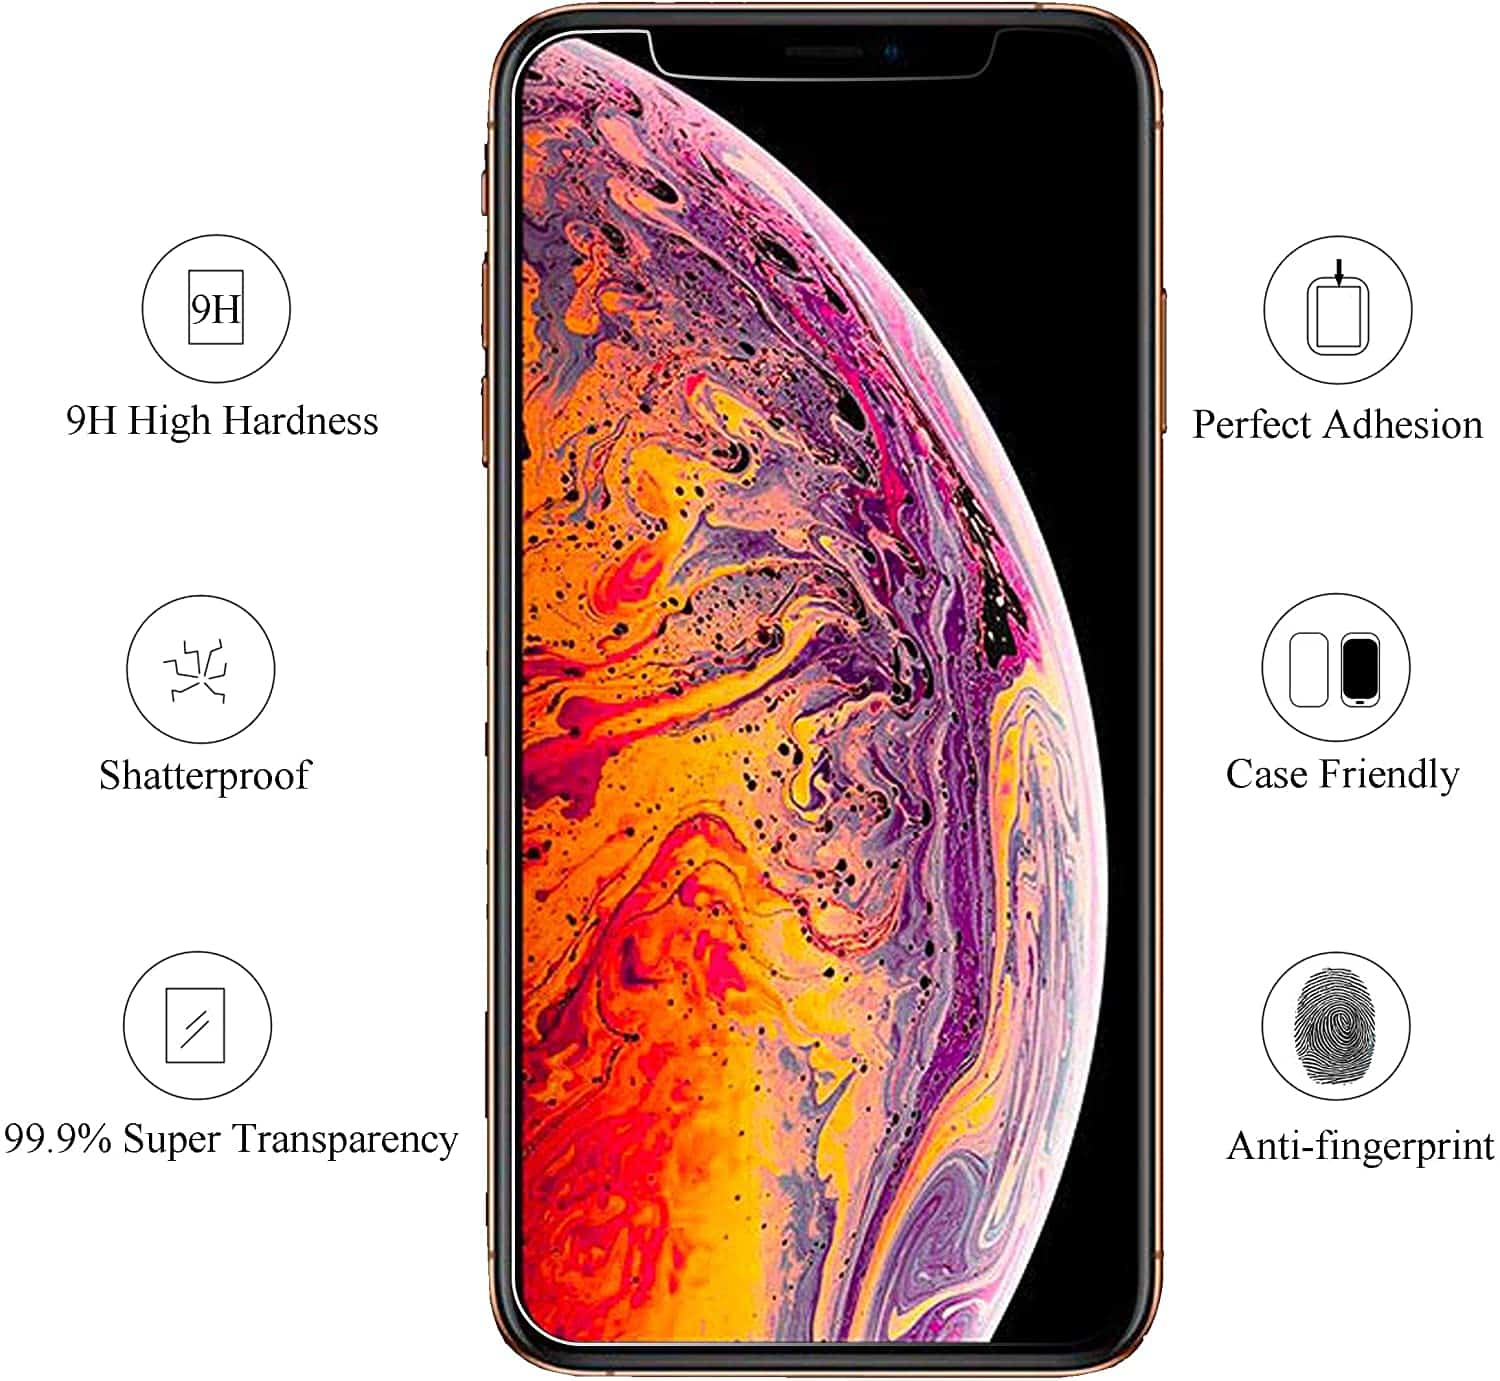 Ailun for Apple iPhone 11 Pro Max-min